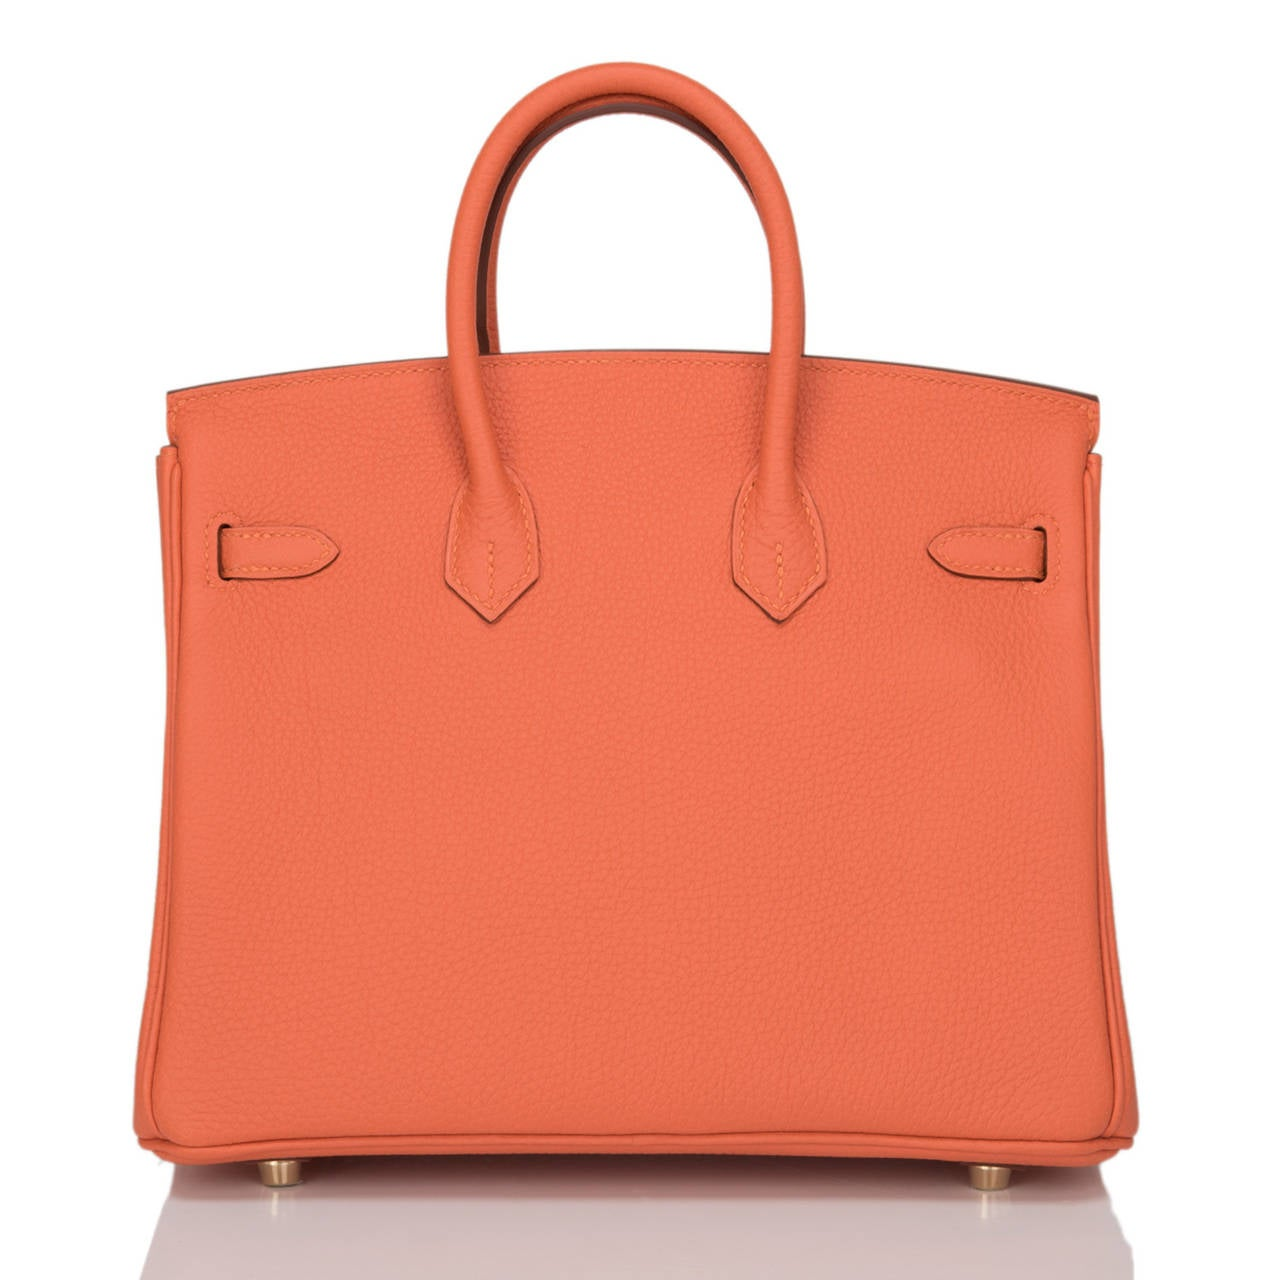 Hermes Feu Togo Birkin 25cm Gold Hardware In New Never_worn Condition For Sale In New York, NY